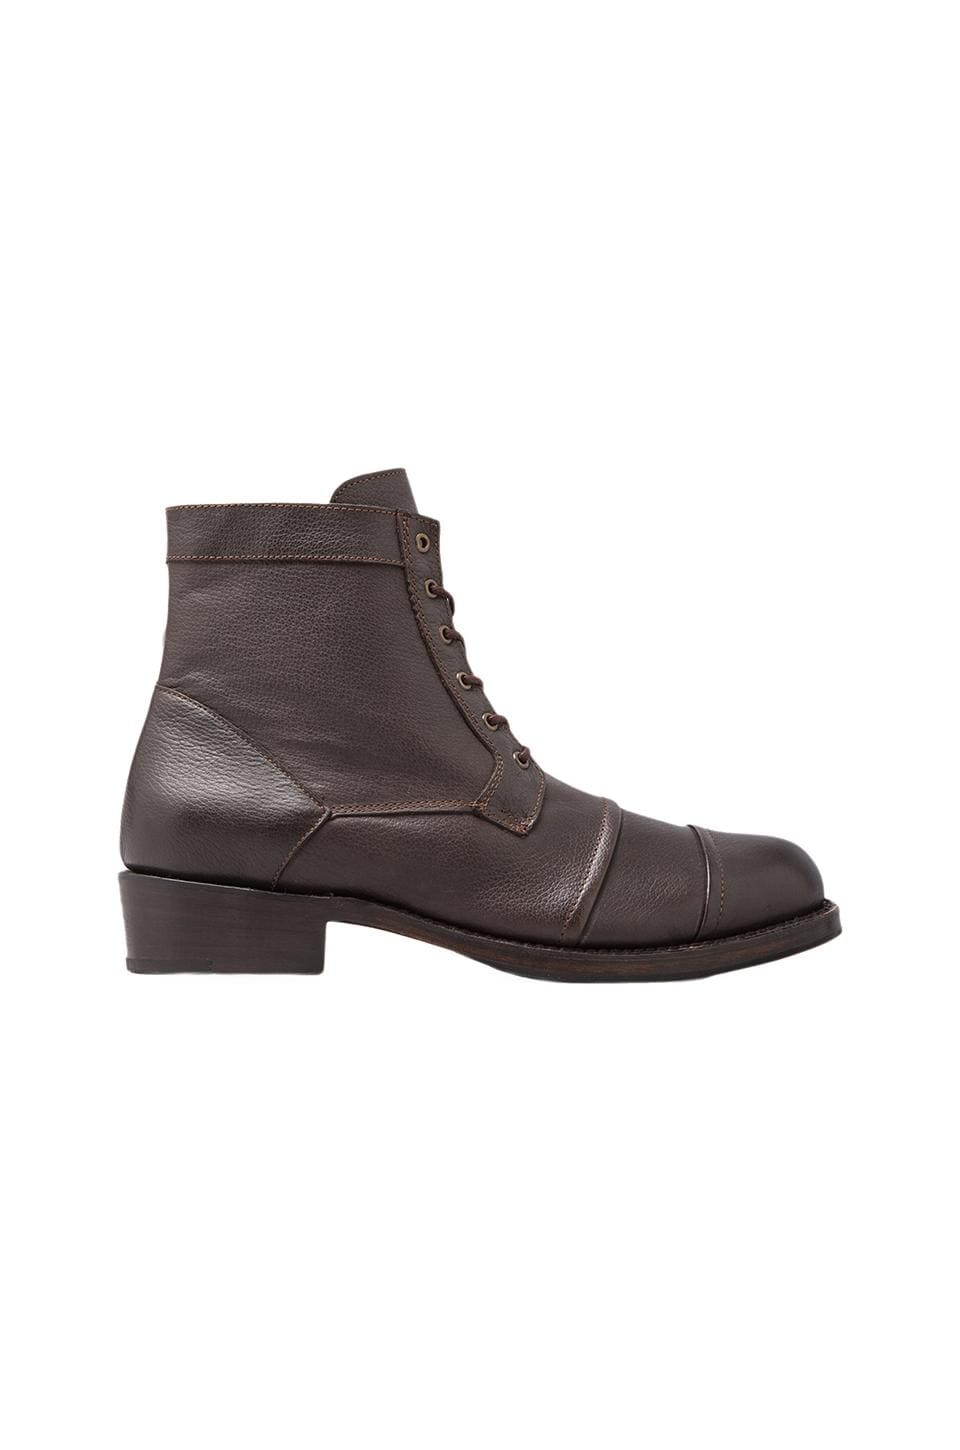 J.D. FISK Ono Boot in Brown